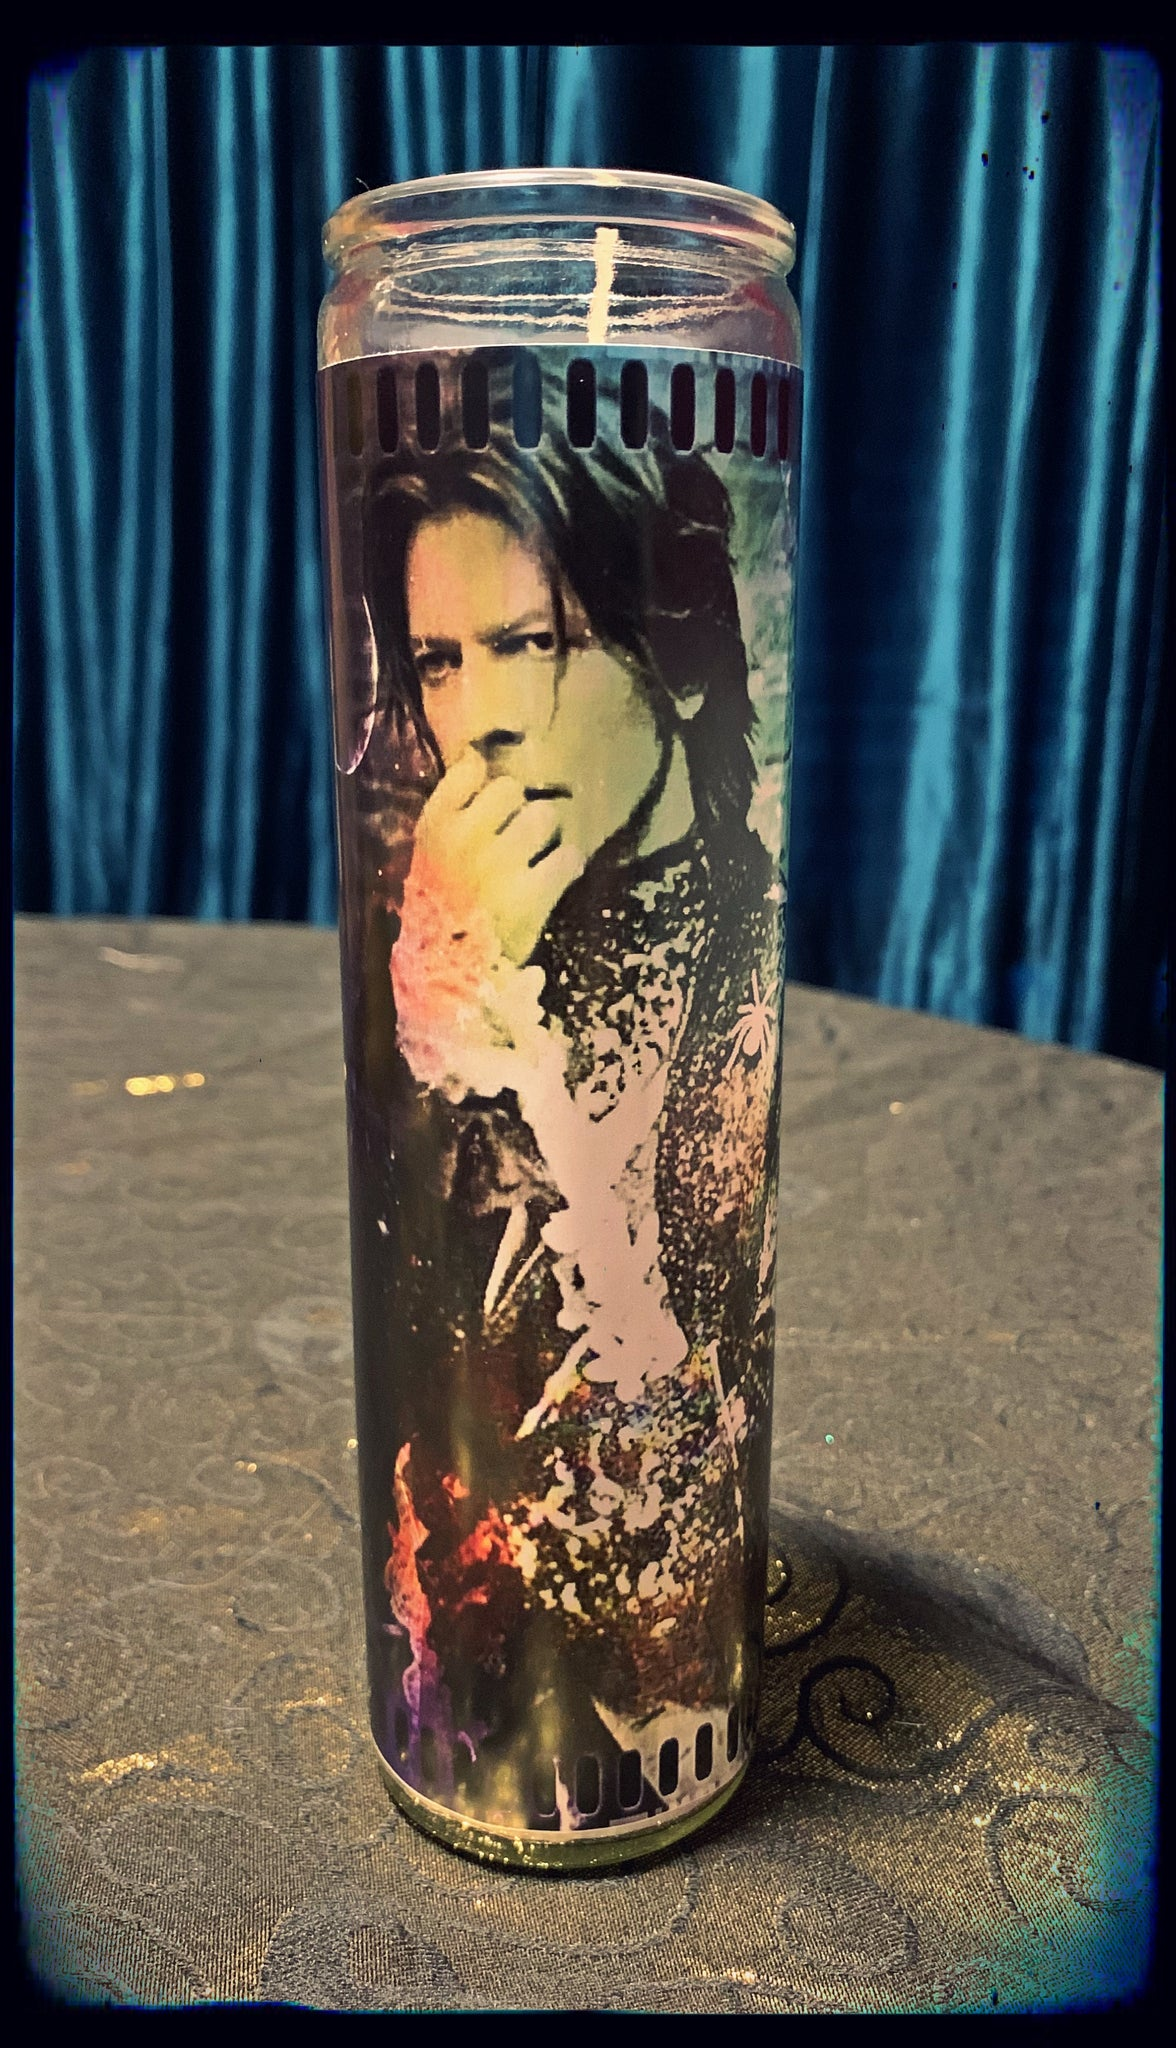 David Bowie devotional candle~